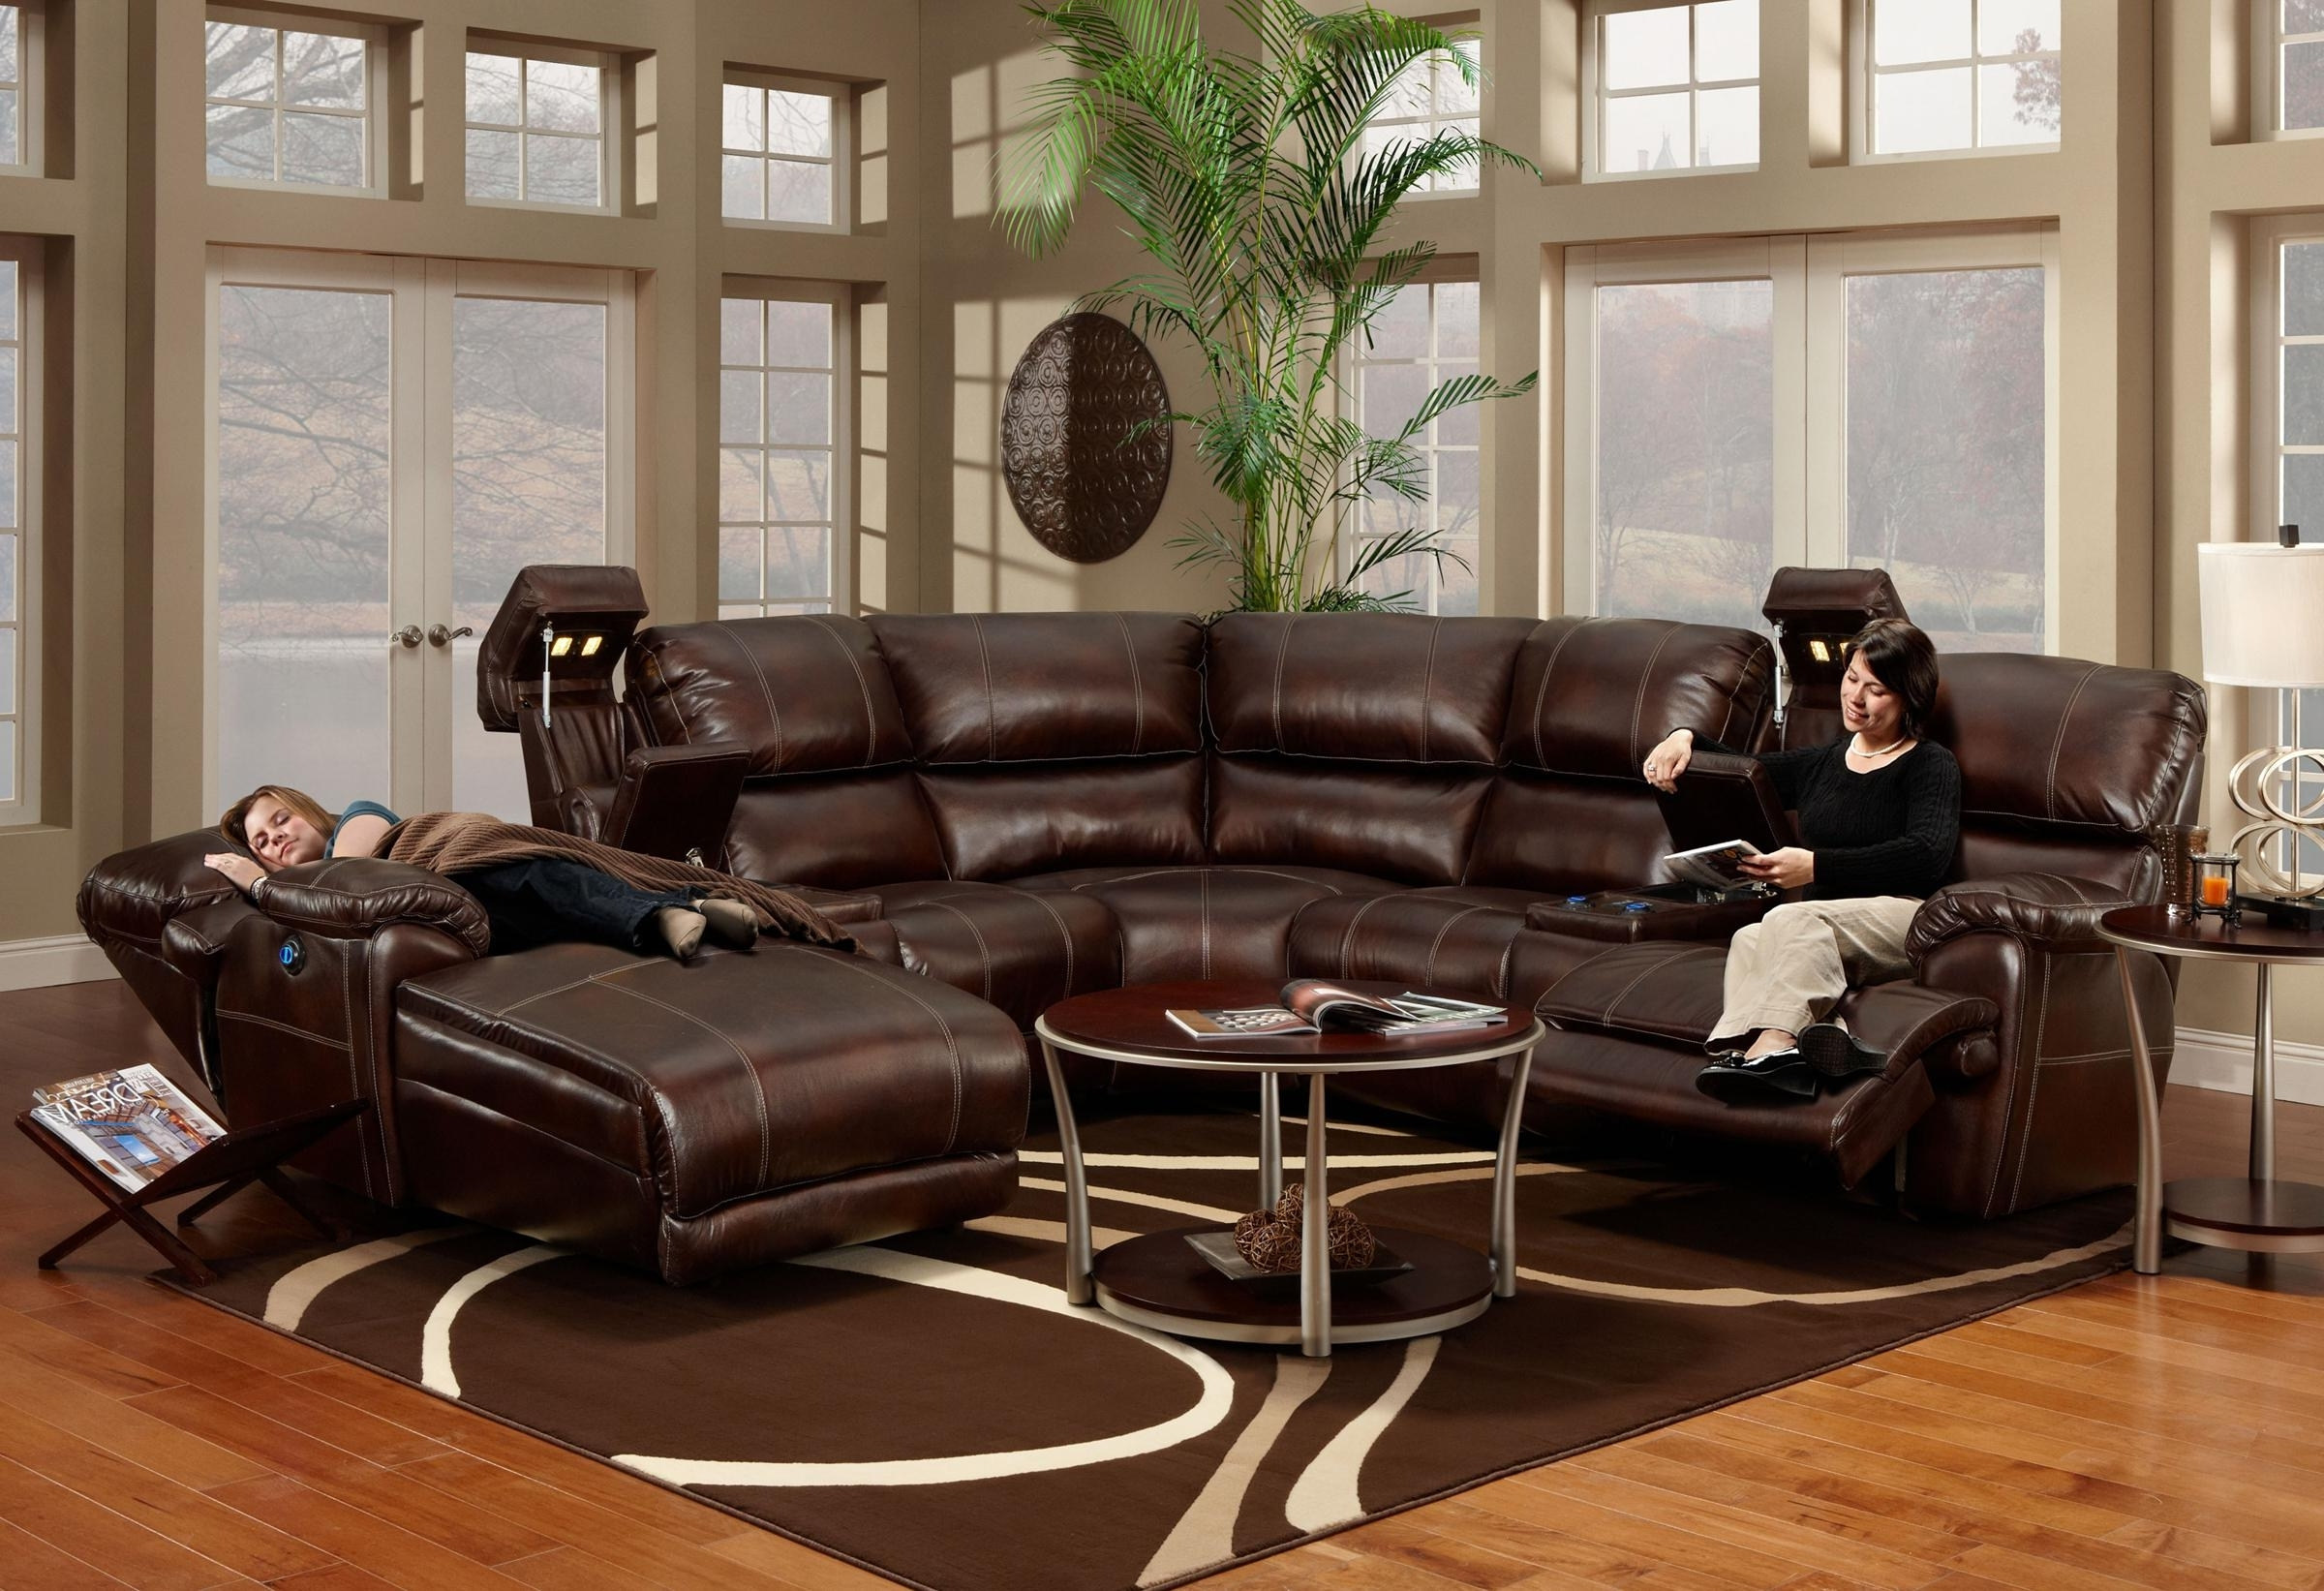 Recent Kansas City Sectional Sofas Intended For Franklin 572 Reclining Sectional Sofa With Chaise – Ahfa – Sofa (View 11 of 20)